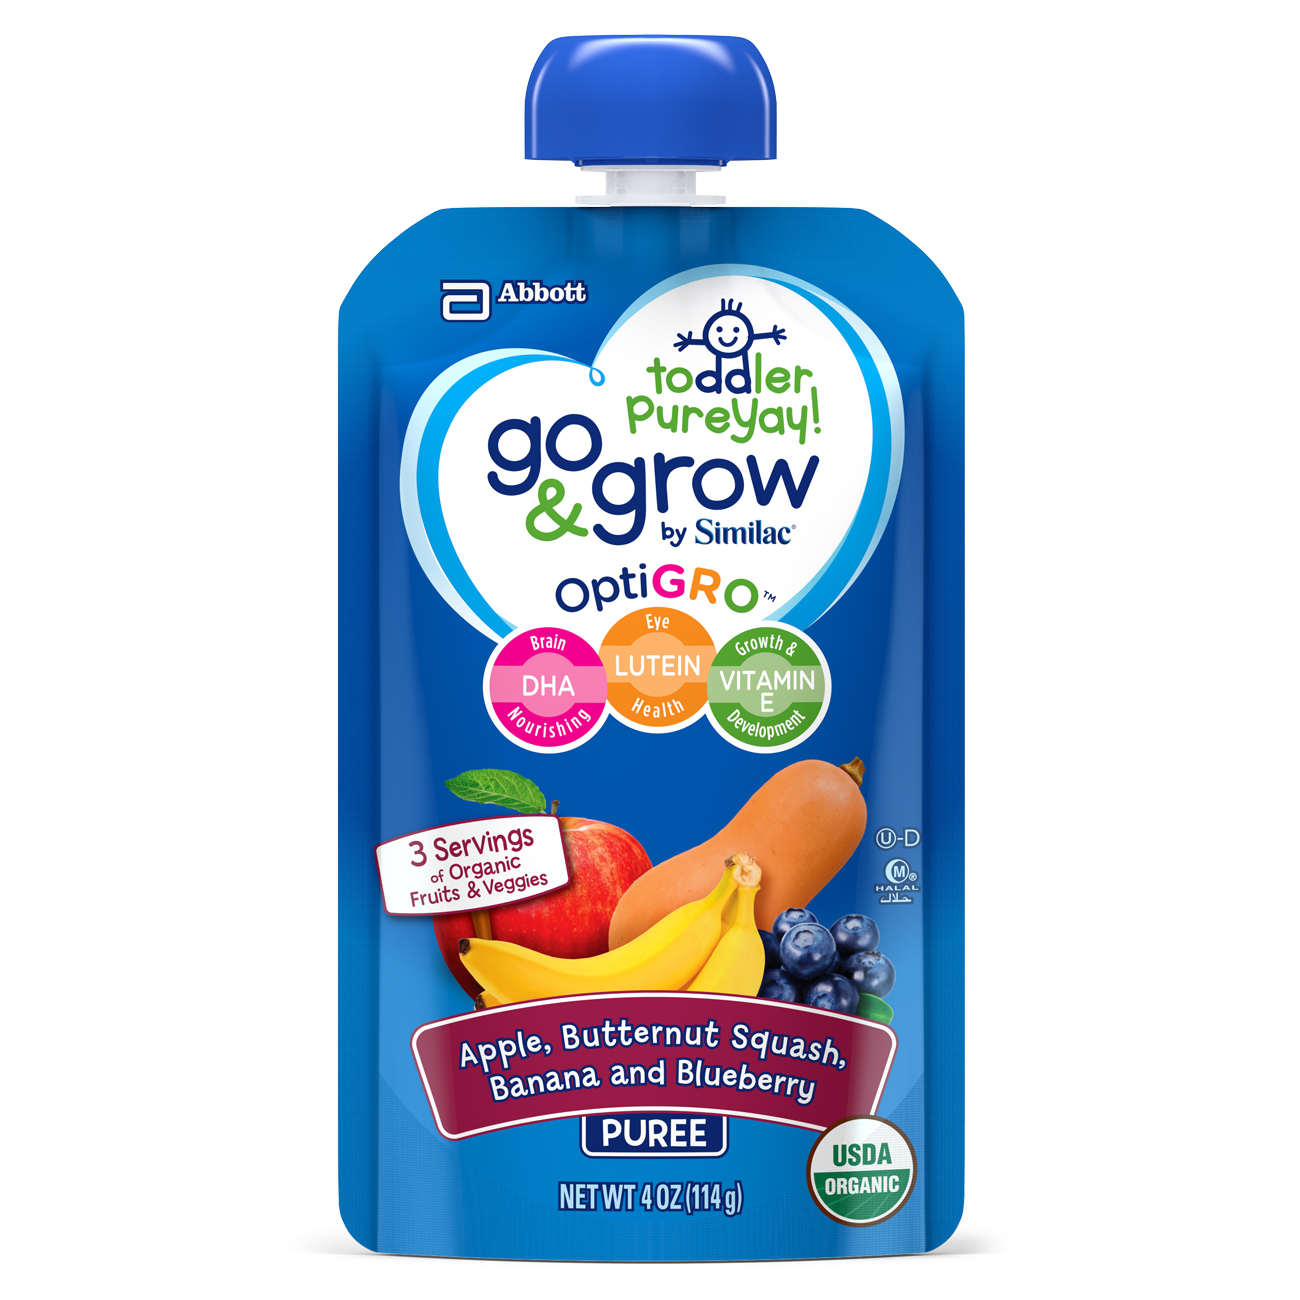 Go & Grow by Similac Fruit and Veggie Pouches with OptiGRO, Apple, Butternut Squash, Banana, Blueberry Puree, For Toddlers, Organic Baby Food, 4 ounces, Pack of 6